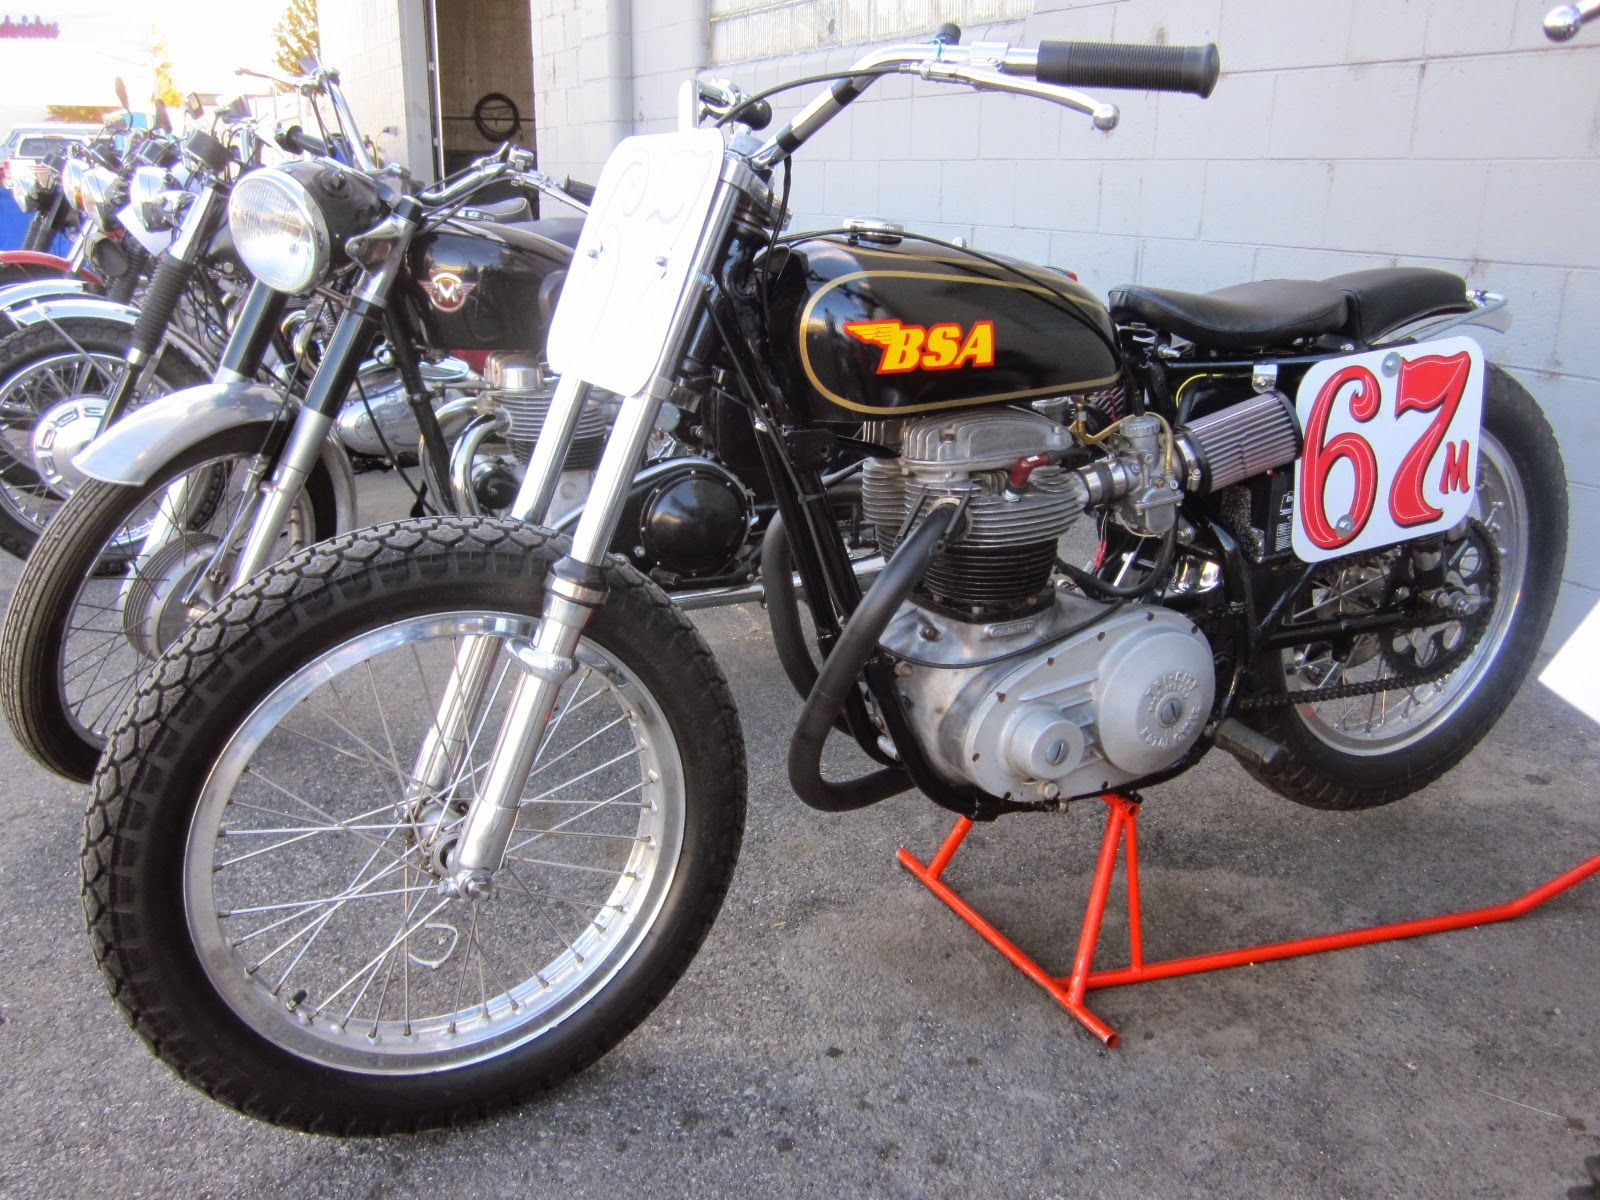 Oldmotodude bsa flat tracker voted best british at the 2014 retro riders vintage motorcycle show pasco wa